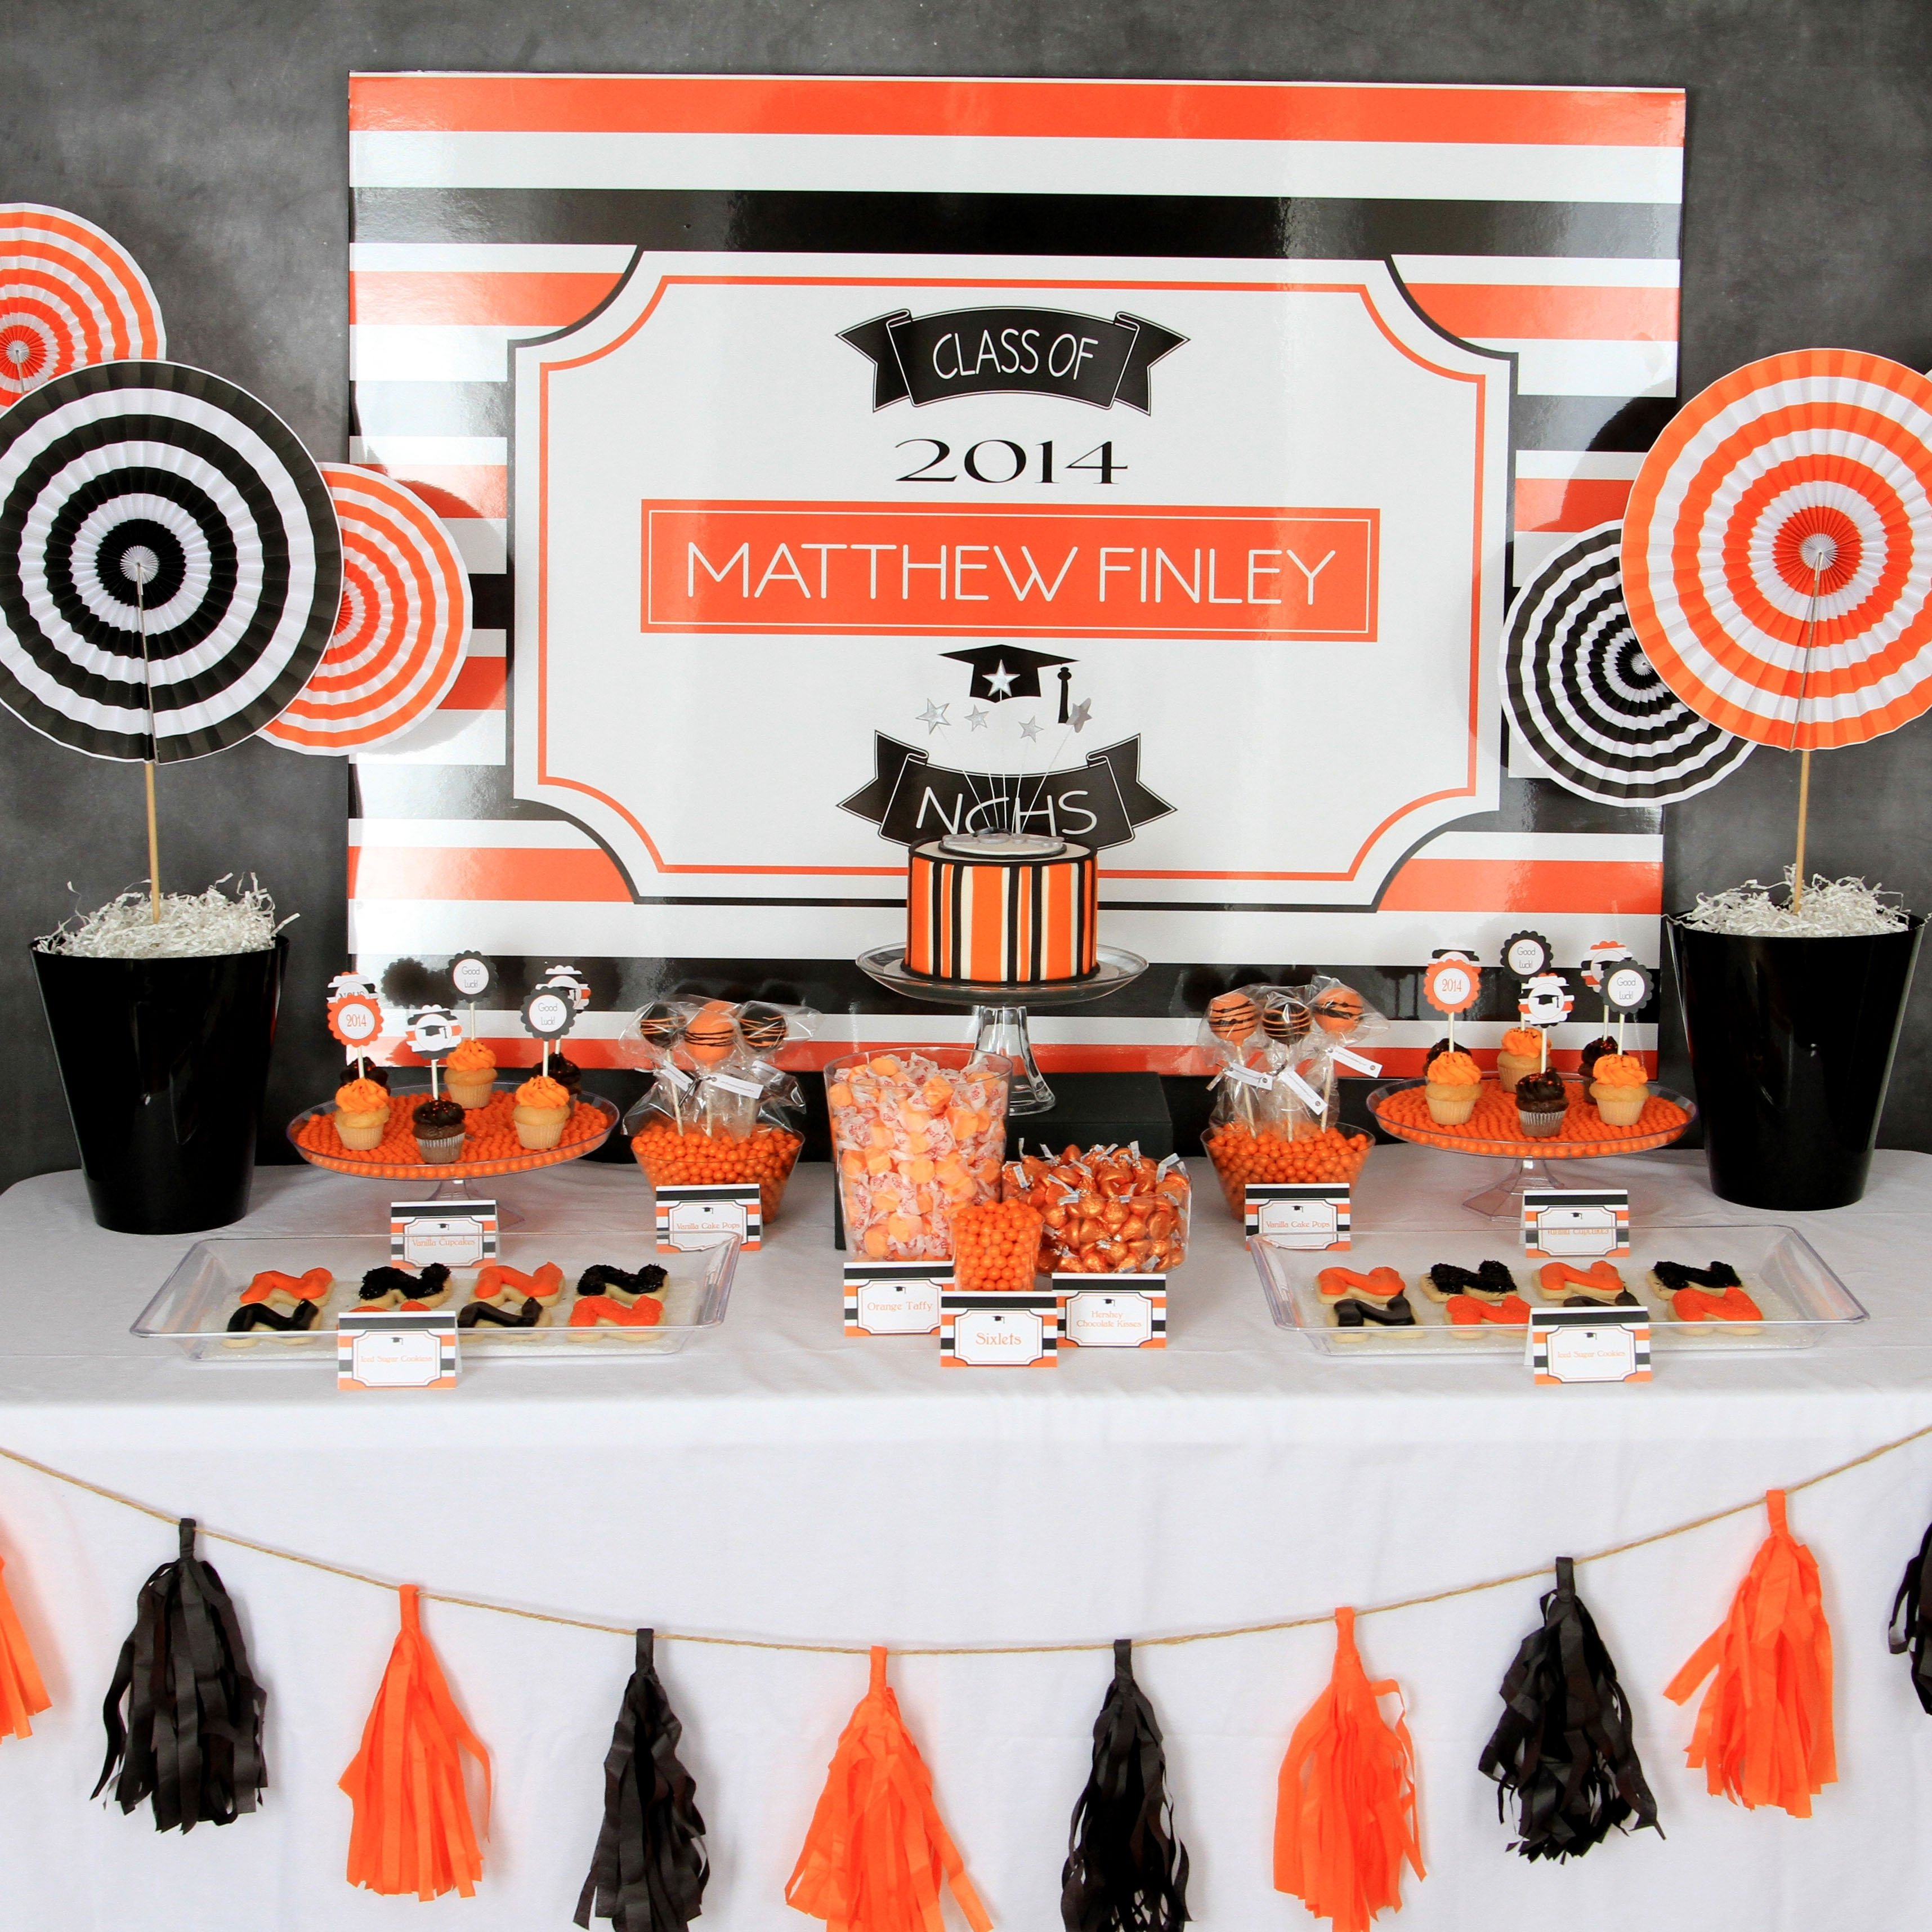 10 Trendy Ideas For A Graduation Party graduation party ideas 2014 sweet table decorations 1